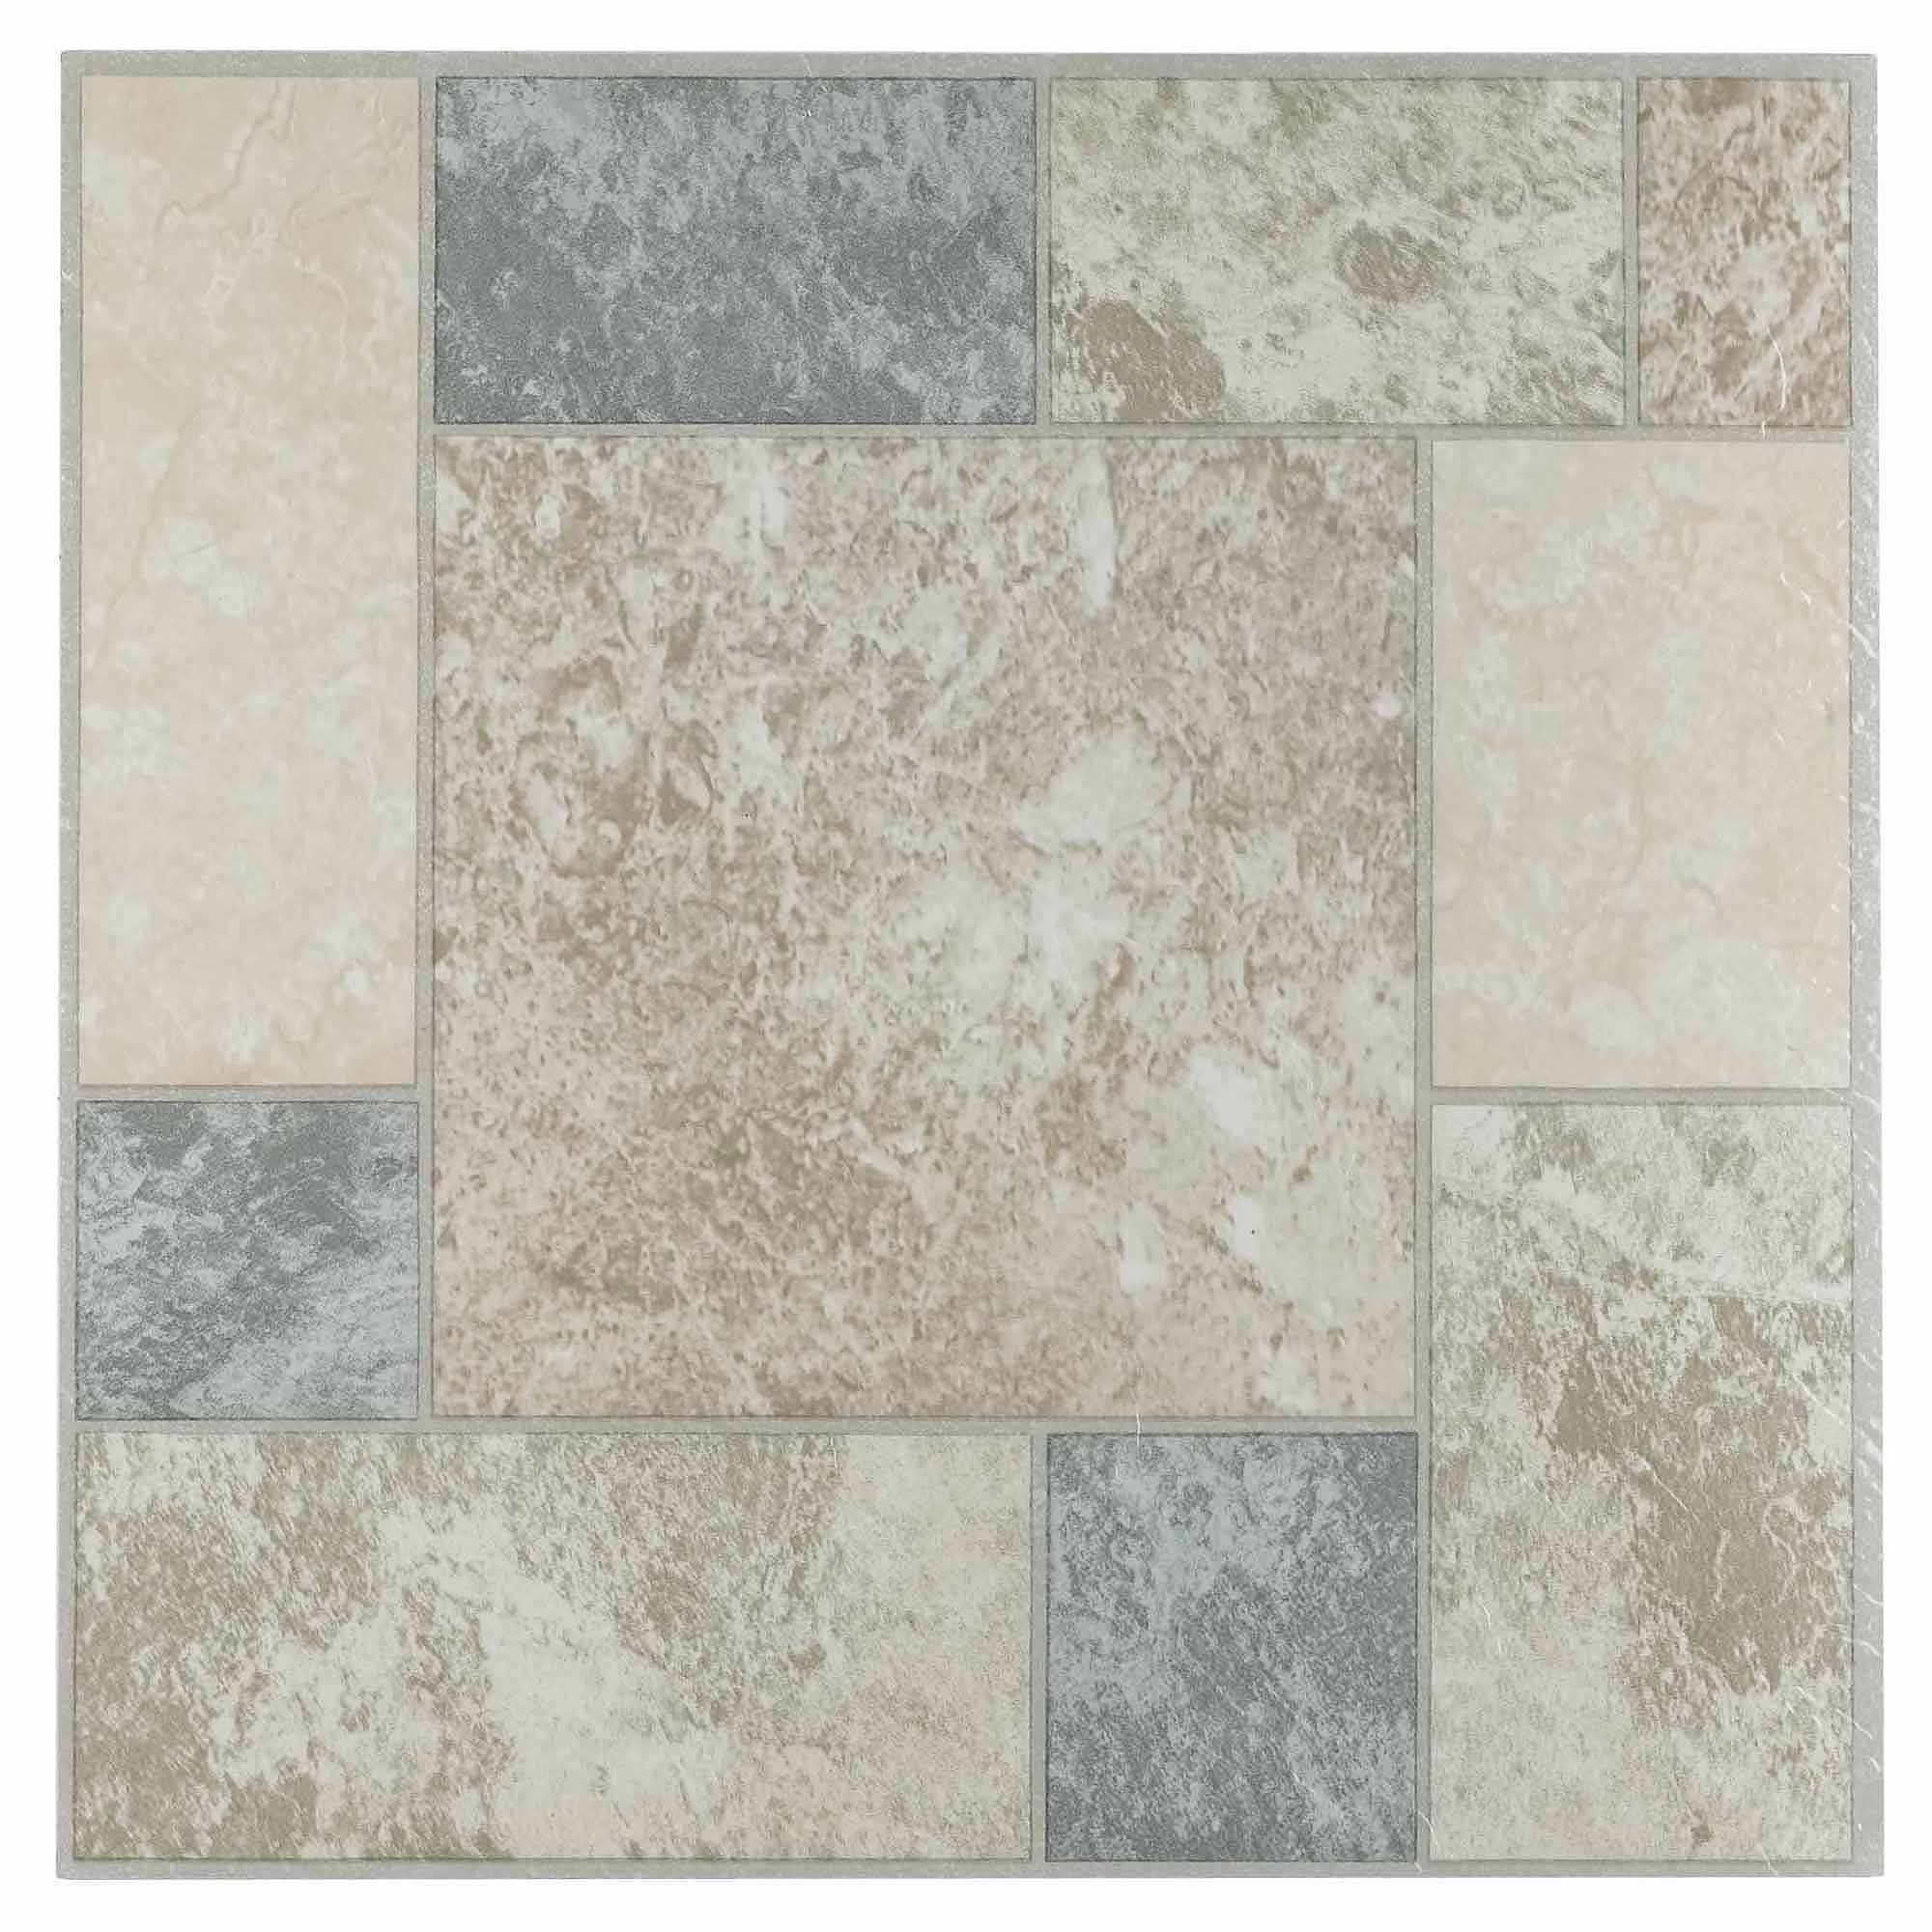 vinyl floor tiles nexus marble blocks 12x12self adhesive vinyl floor tile - 20 tiles/20  sq.ft. XMNSZYN